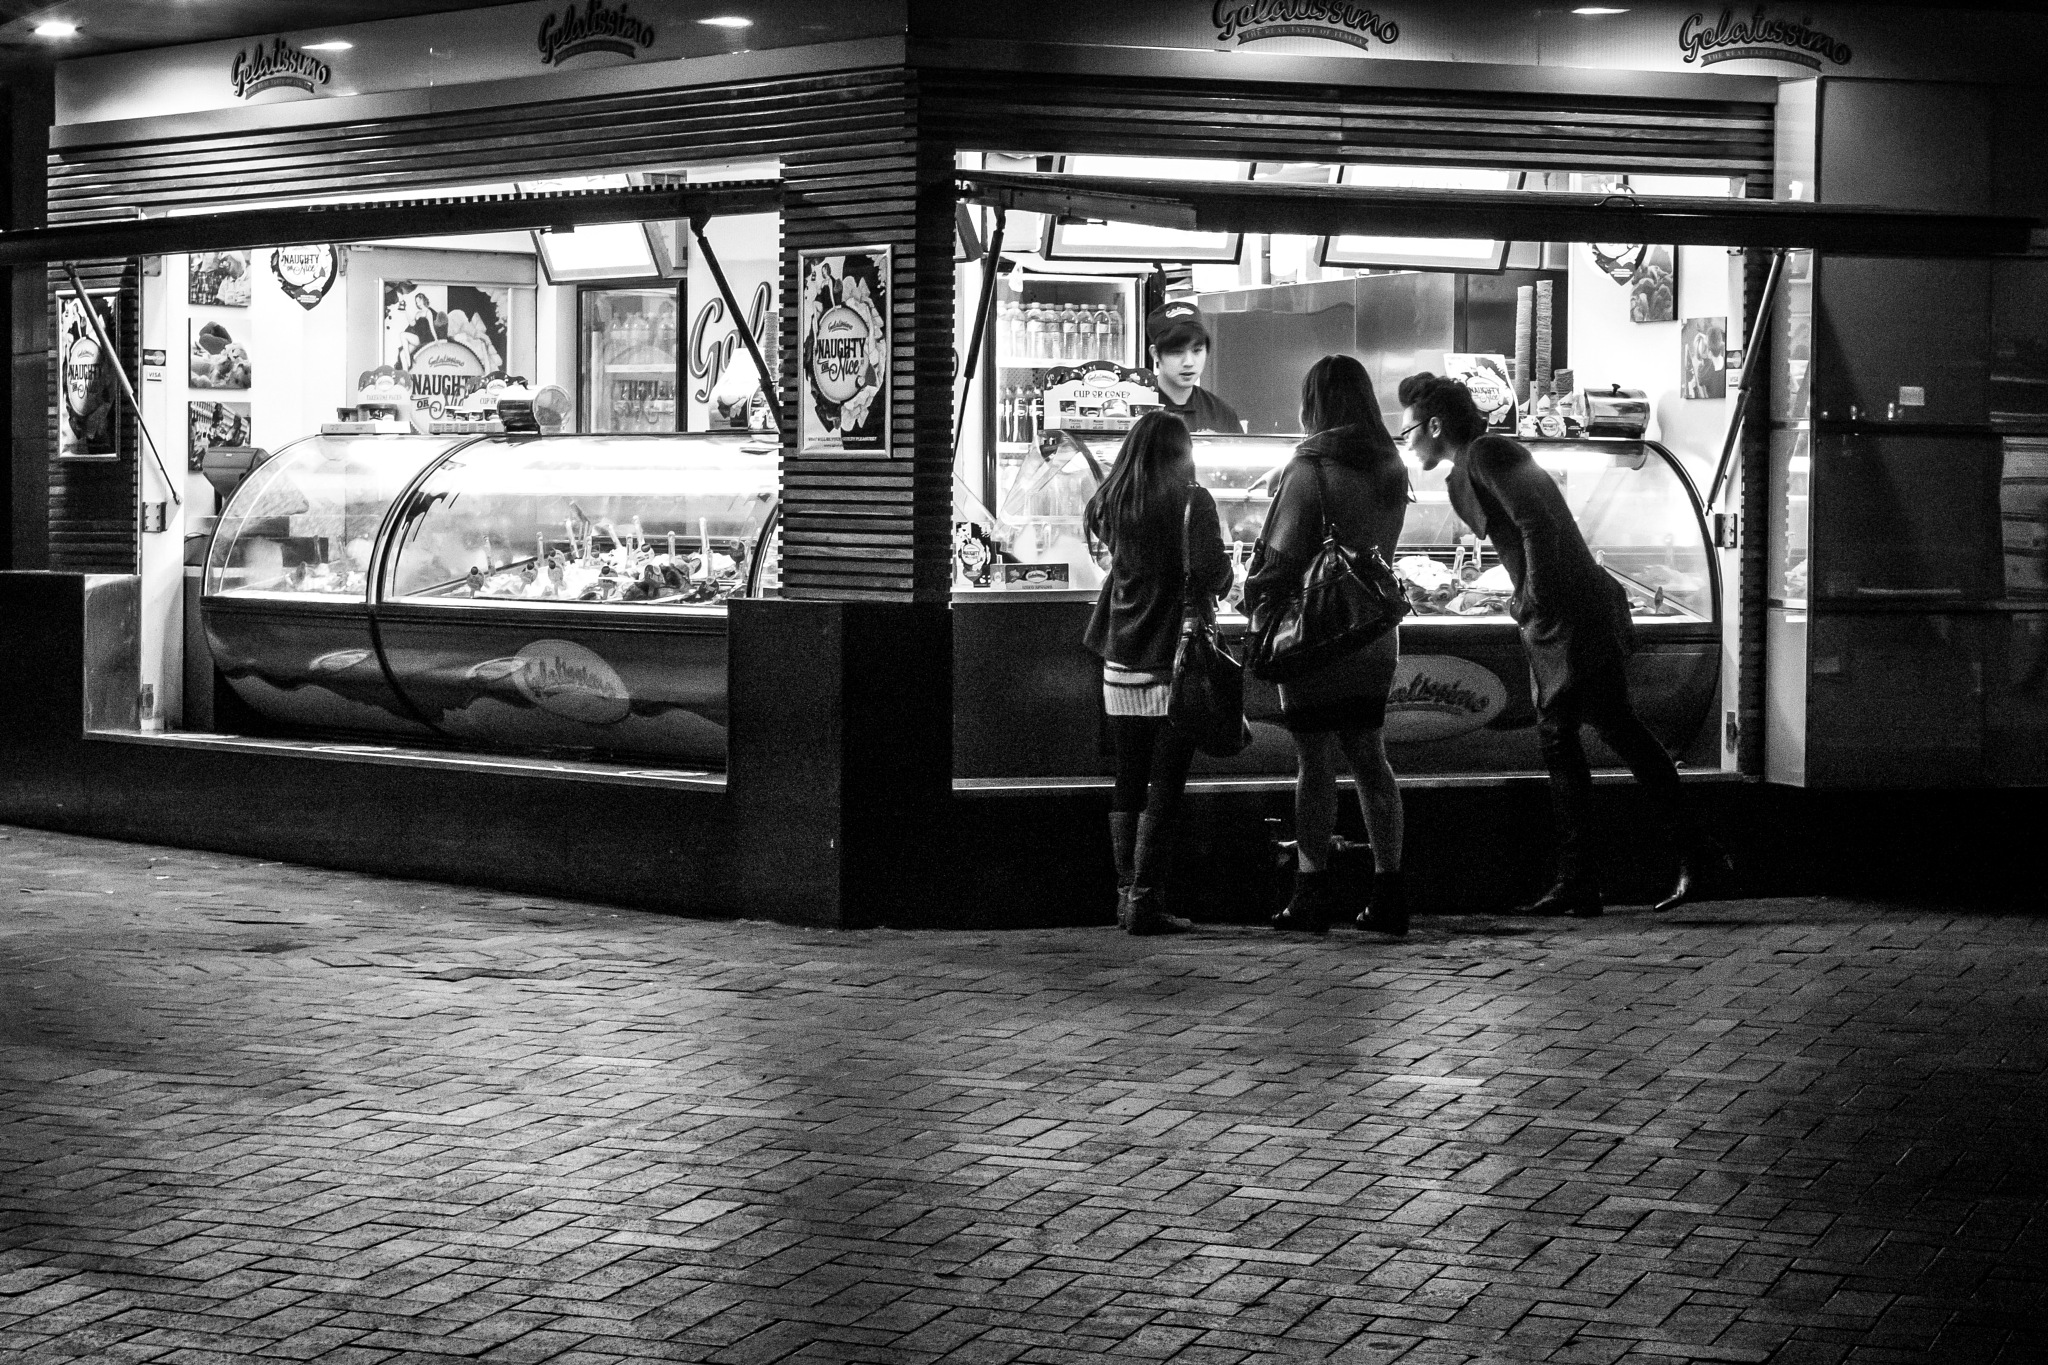 Late Night Ice-Cream by Paul Tuckley